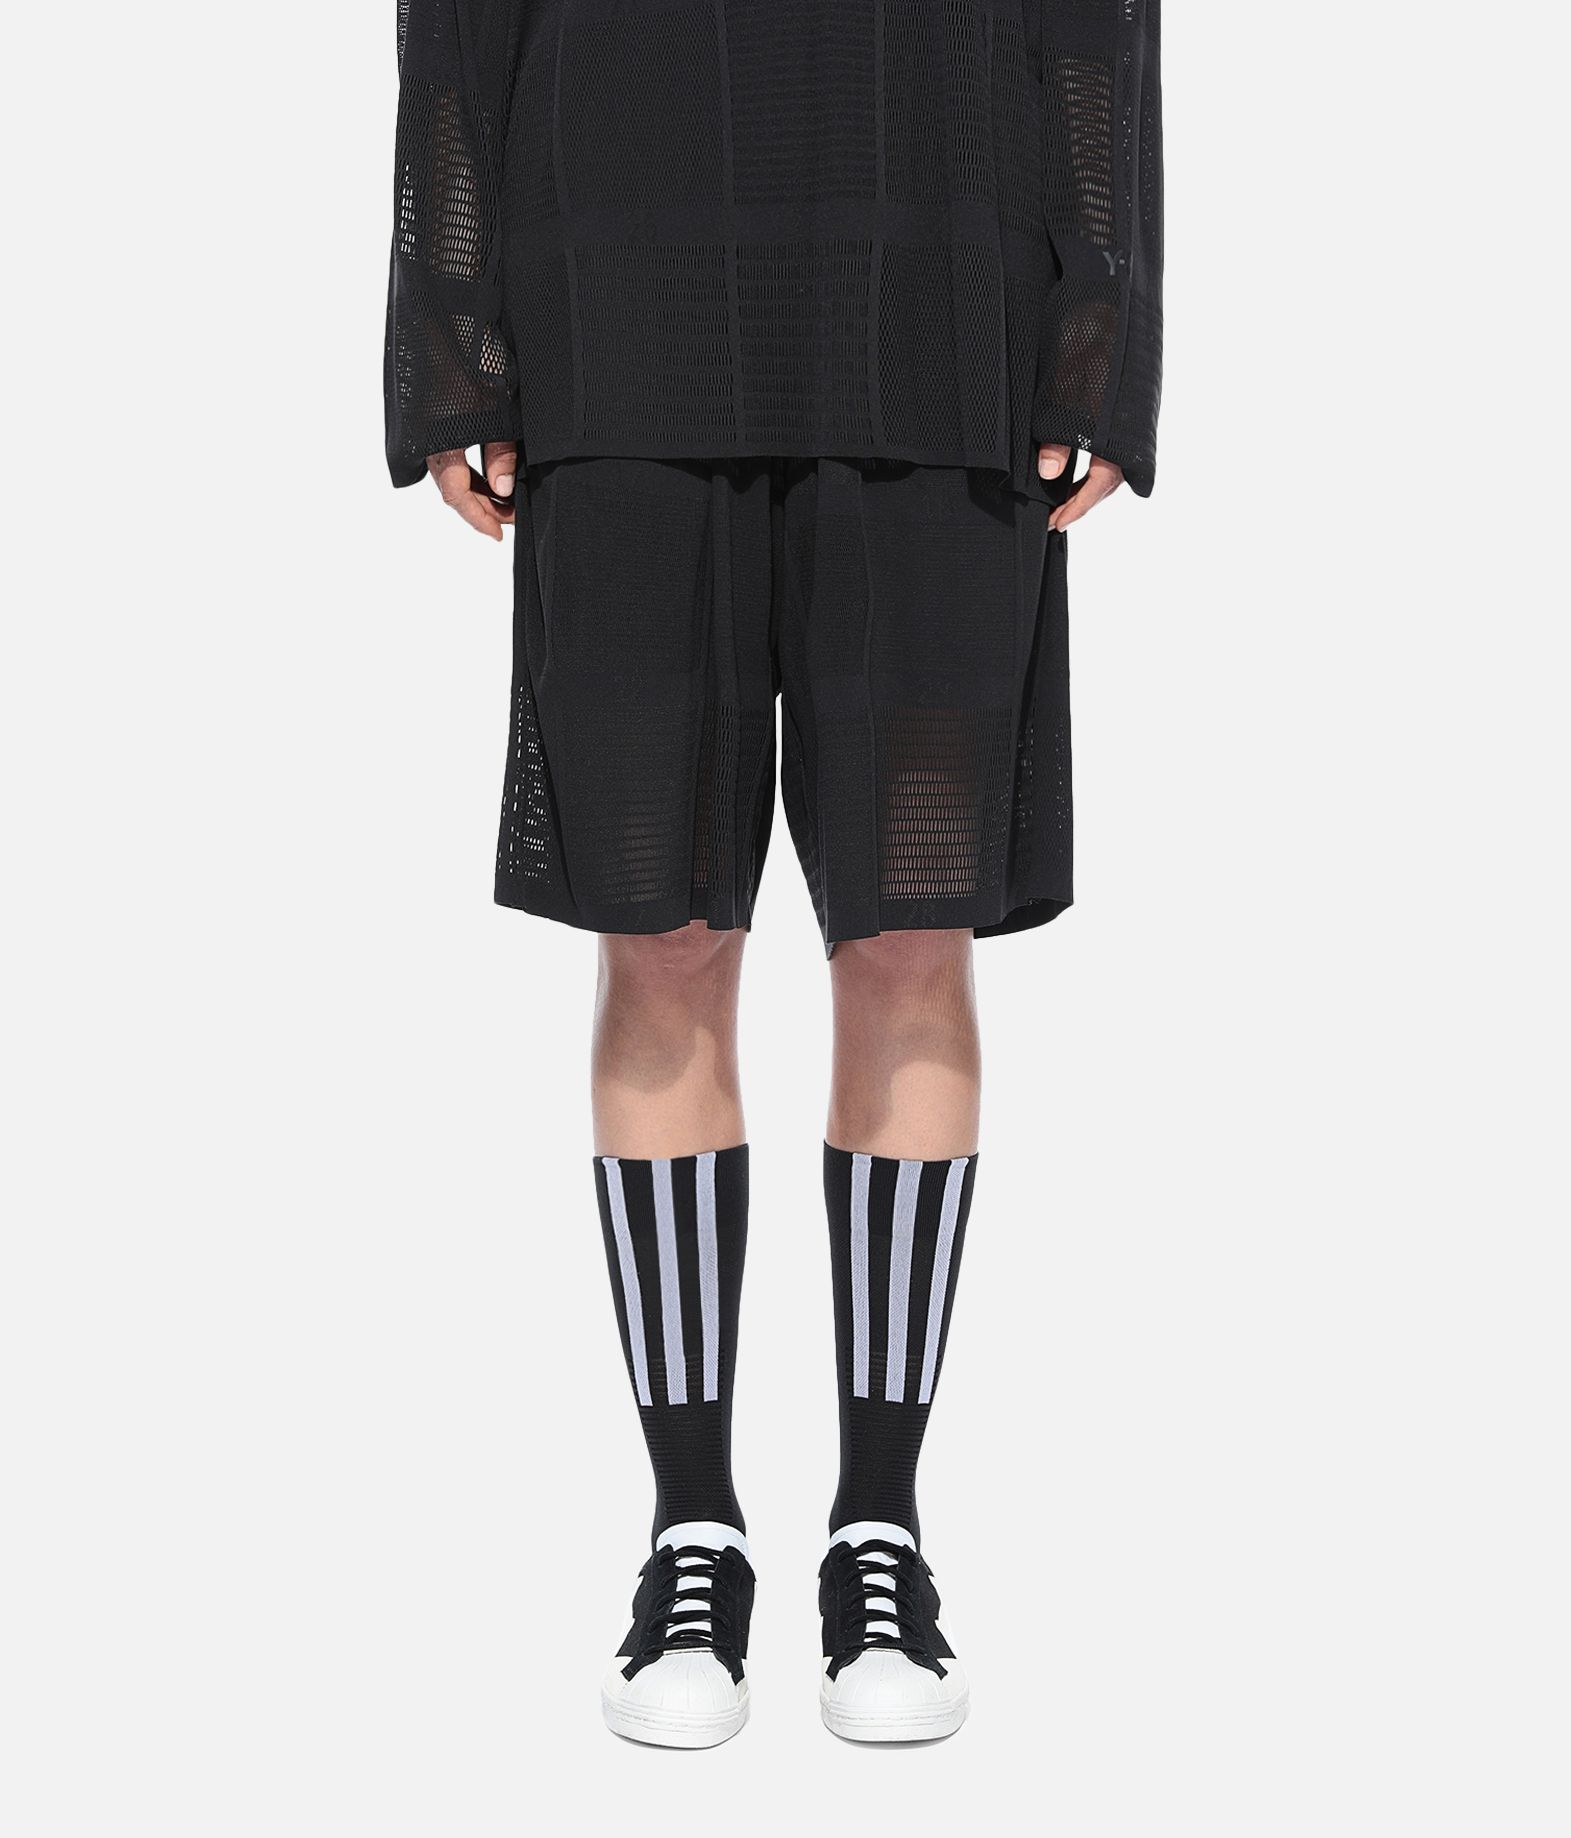 Y-3 Y-3 Patchwork Shorts Bermuda shorts Woman r